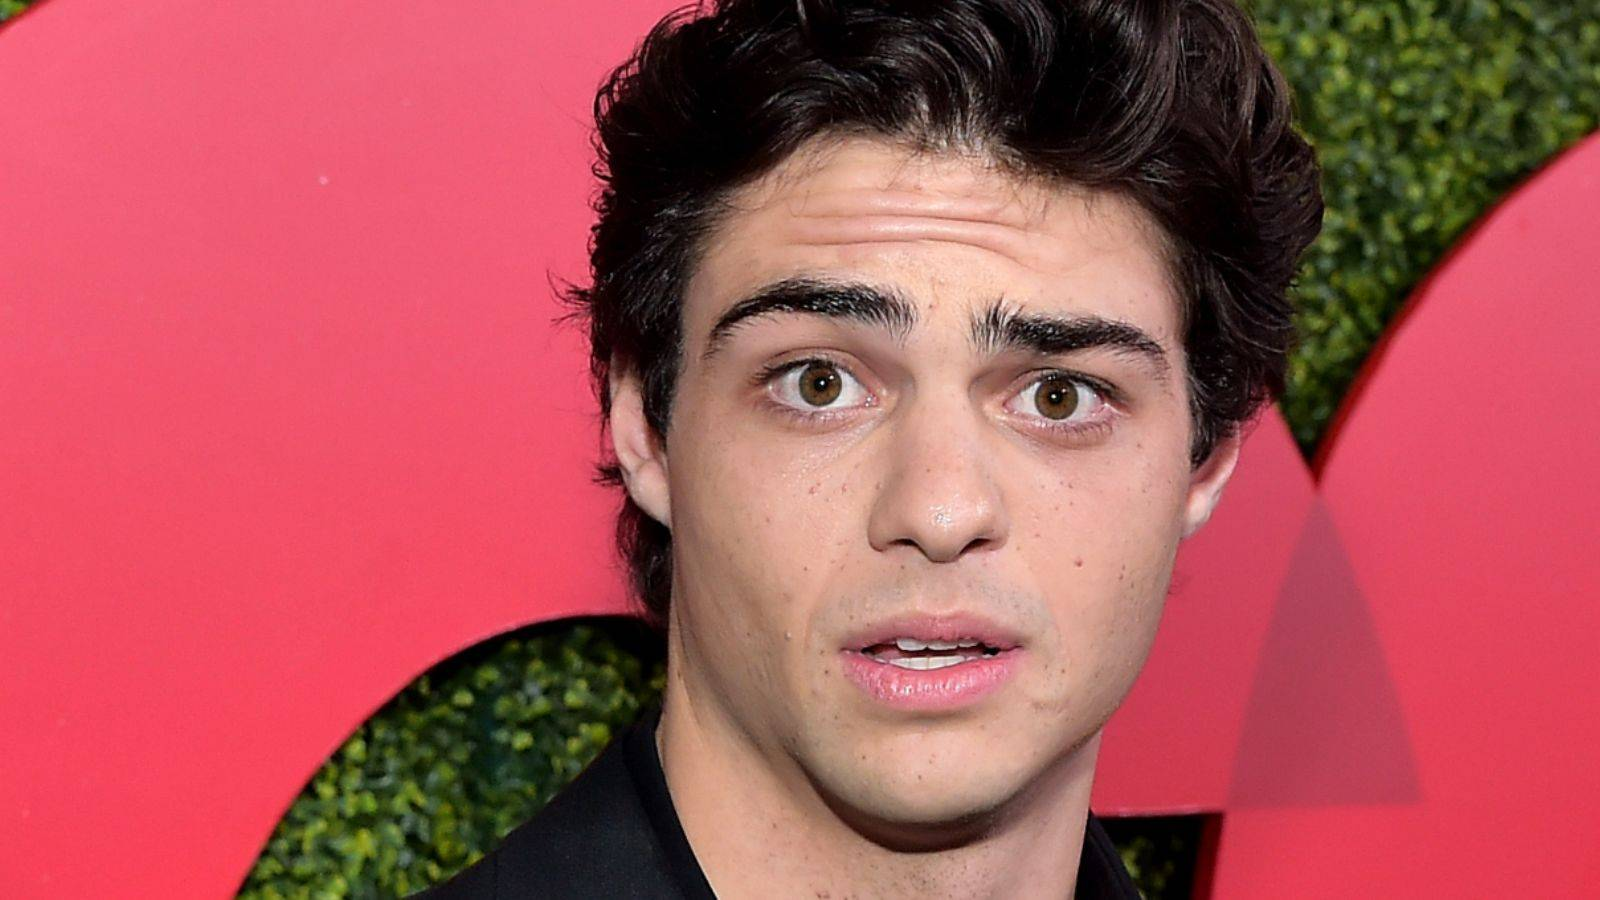 Watch Noah Centineo And Lana Condor Adorably Announce To All The Boys Sequel